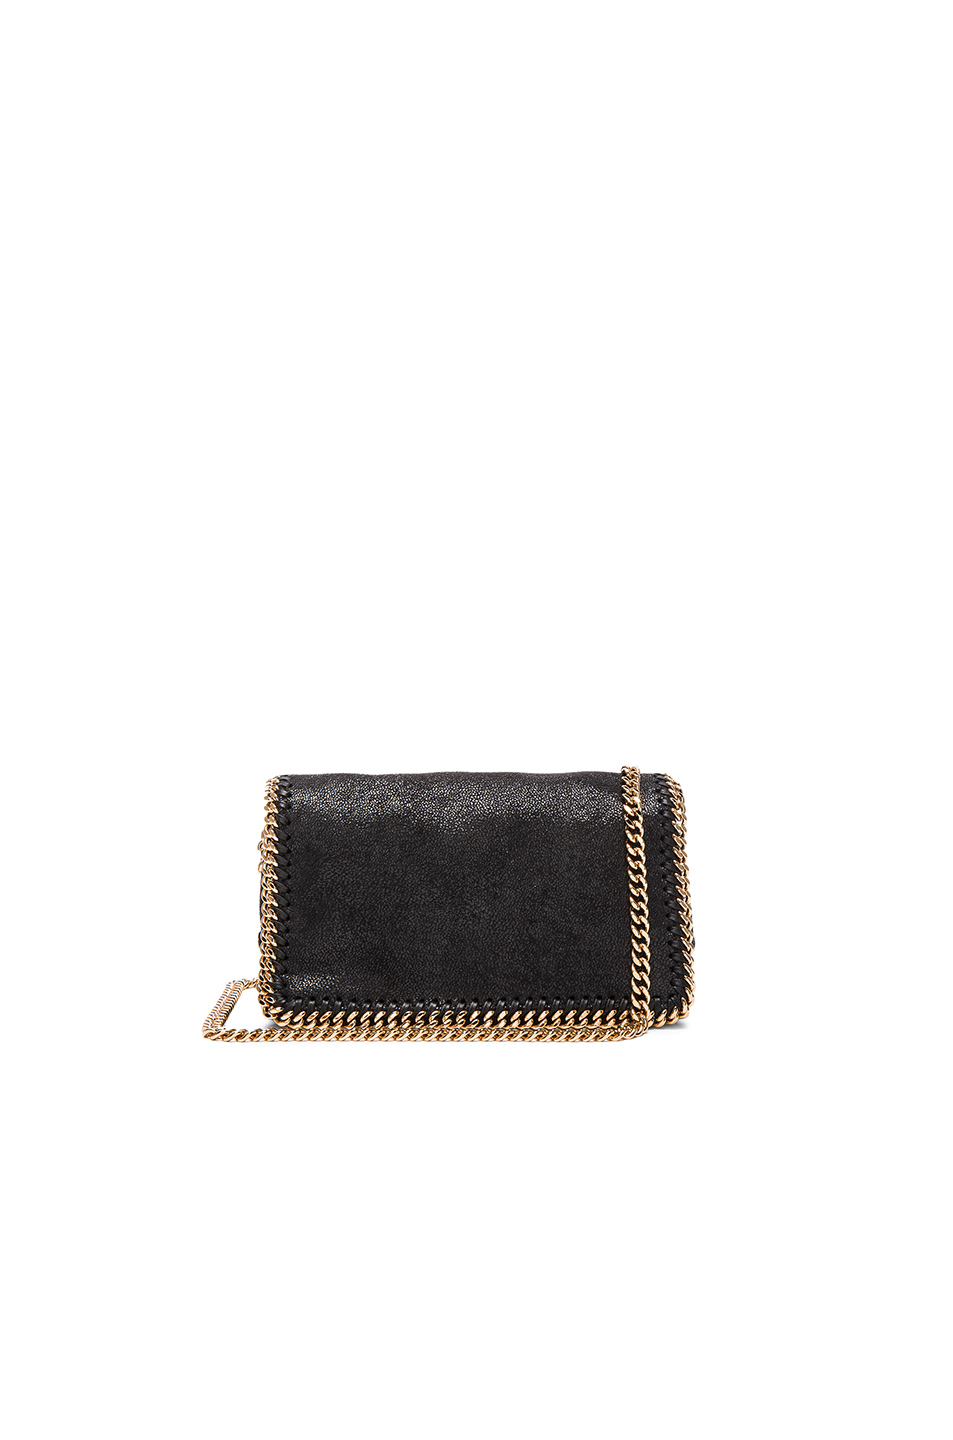 296422e1138 Stella McCartney Falabella Crossbody; Stella McCartney Falabella Crossbody  ...